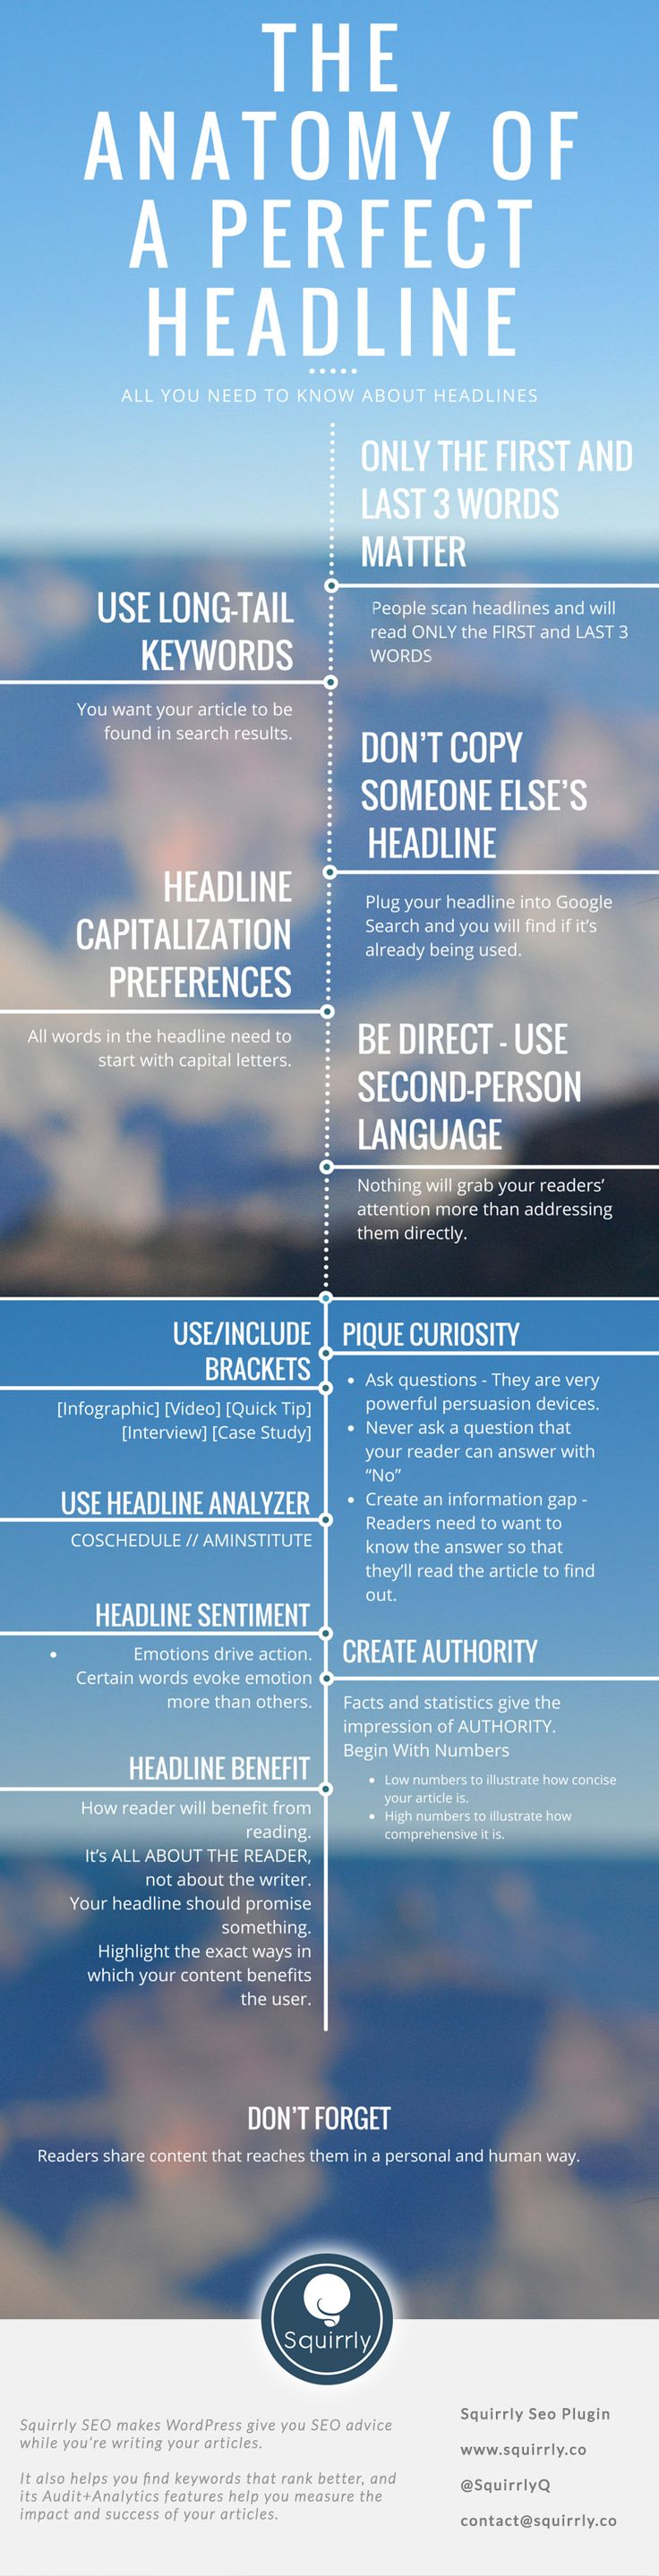 Create Best Headlines Infographic - How do you get people to actually read what you write? https://www.squirrly.co/how-to-write-perfect-headlines-that-give-you-results